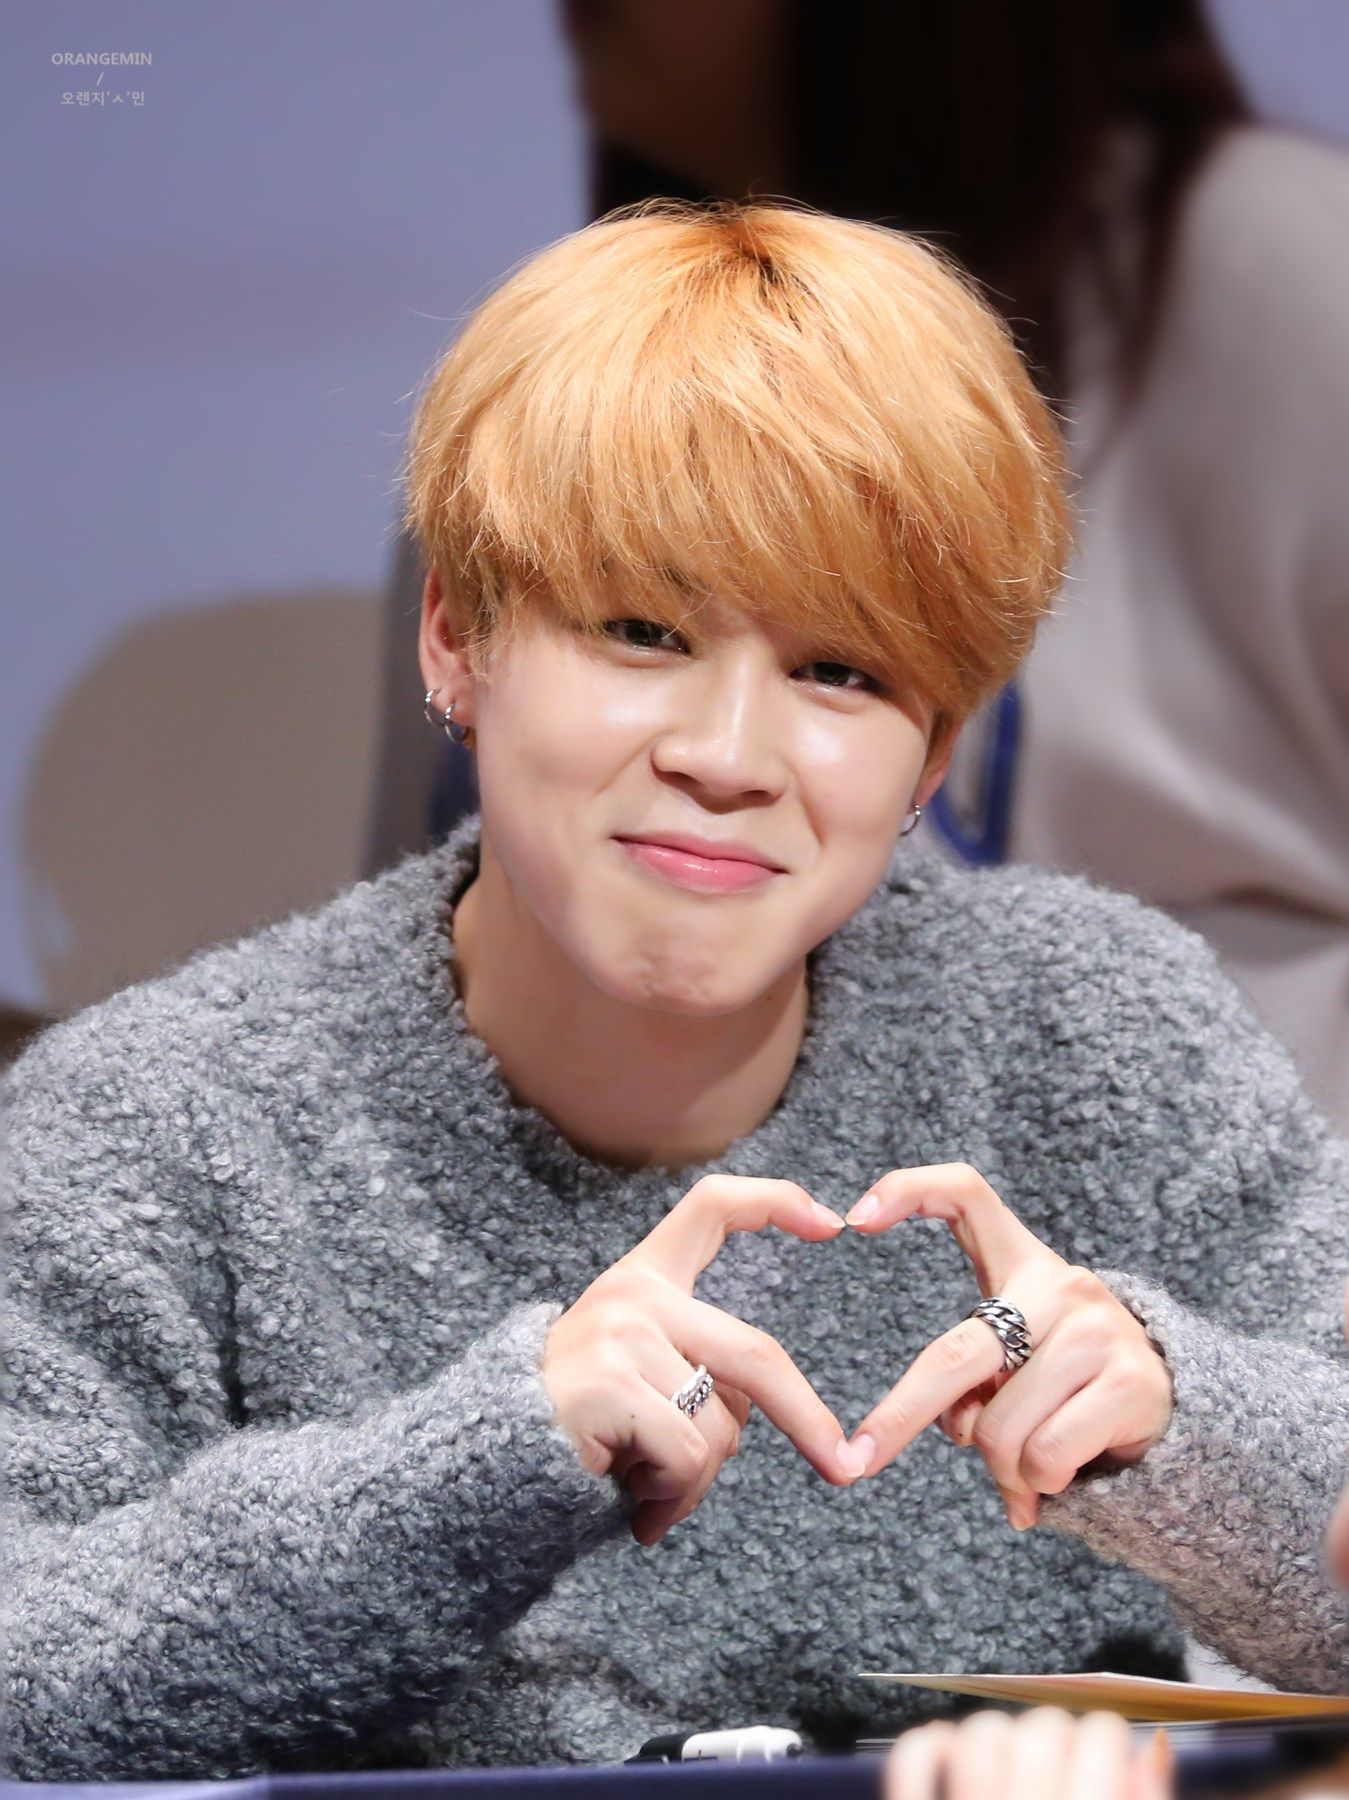 BTS JM | His hair, his cute nose, his adorable smile, his short tiny cute fingers, and that adorable heart. :3 I am satisfied.